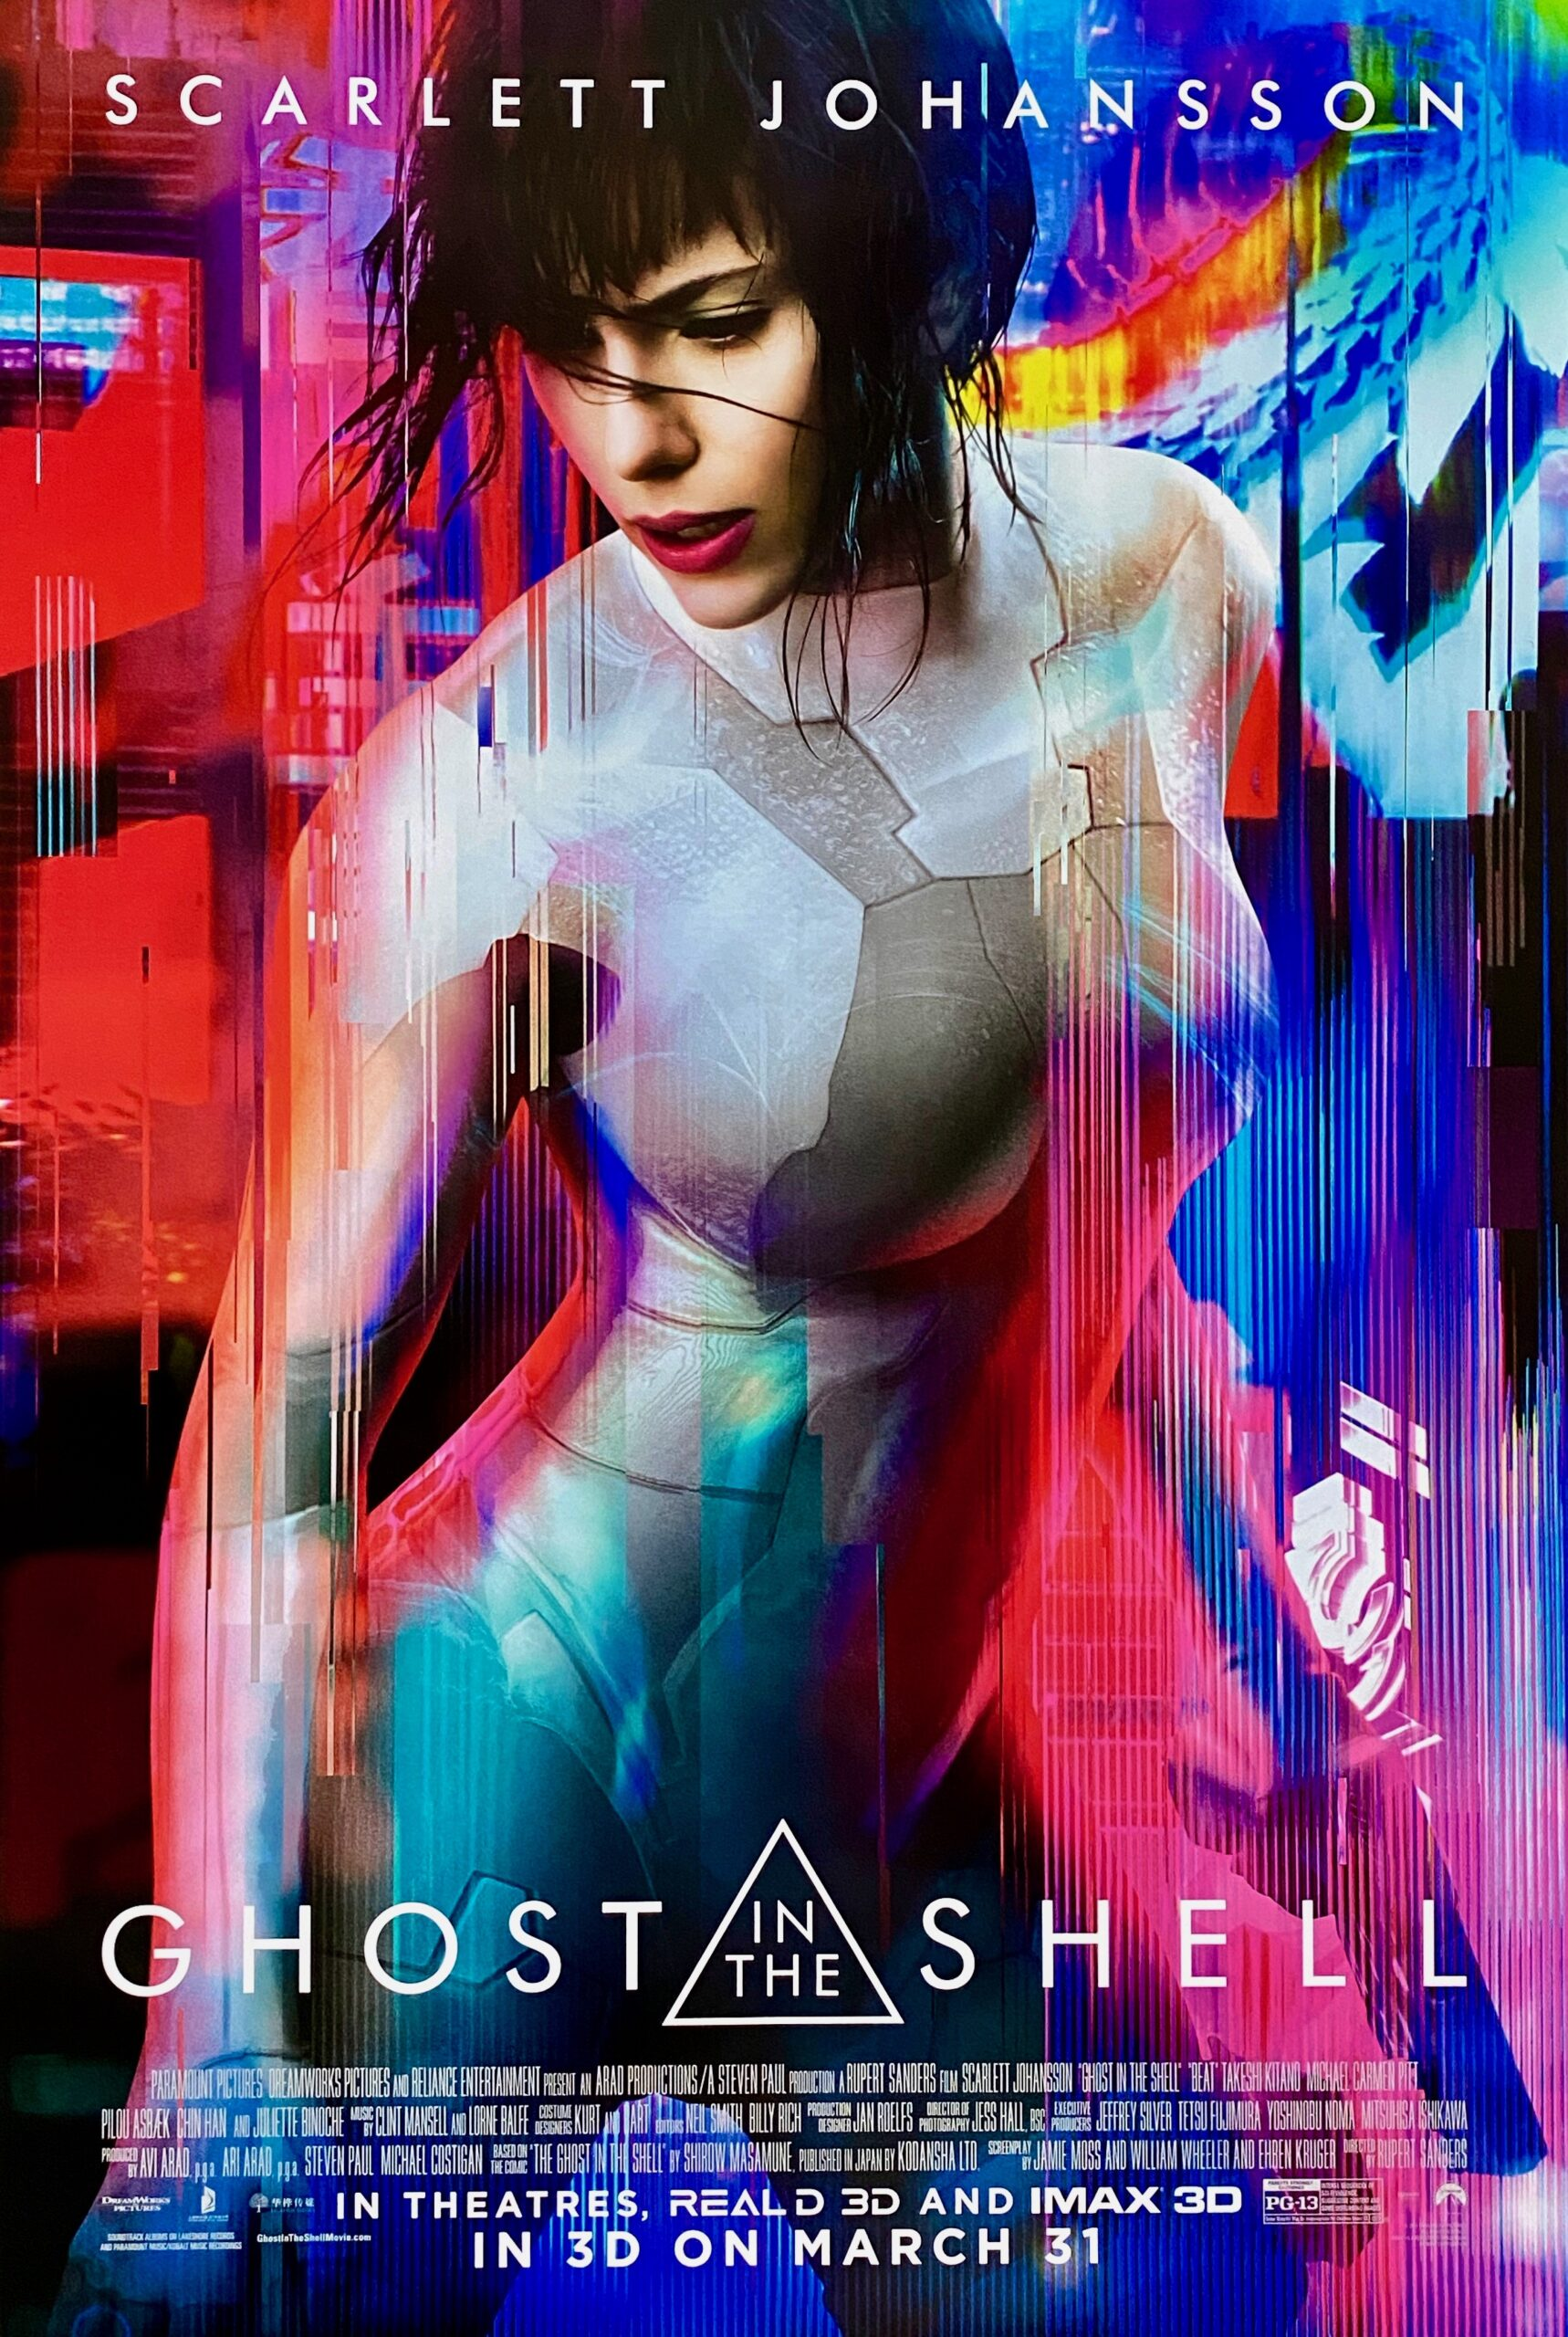 Original Ghost In The Shell Movie Poster Anime Scarlett Johansson